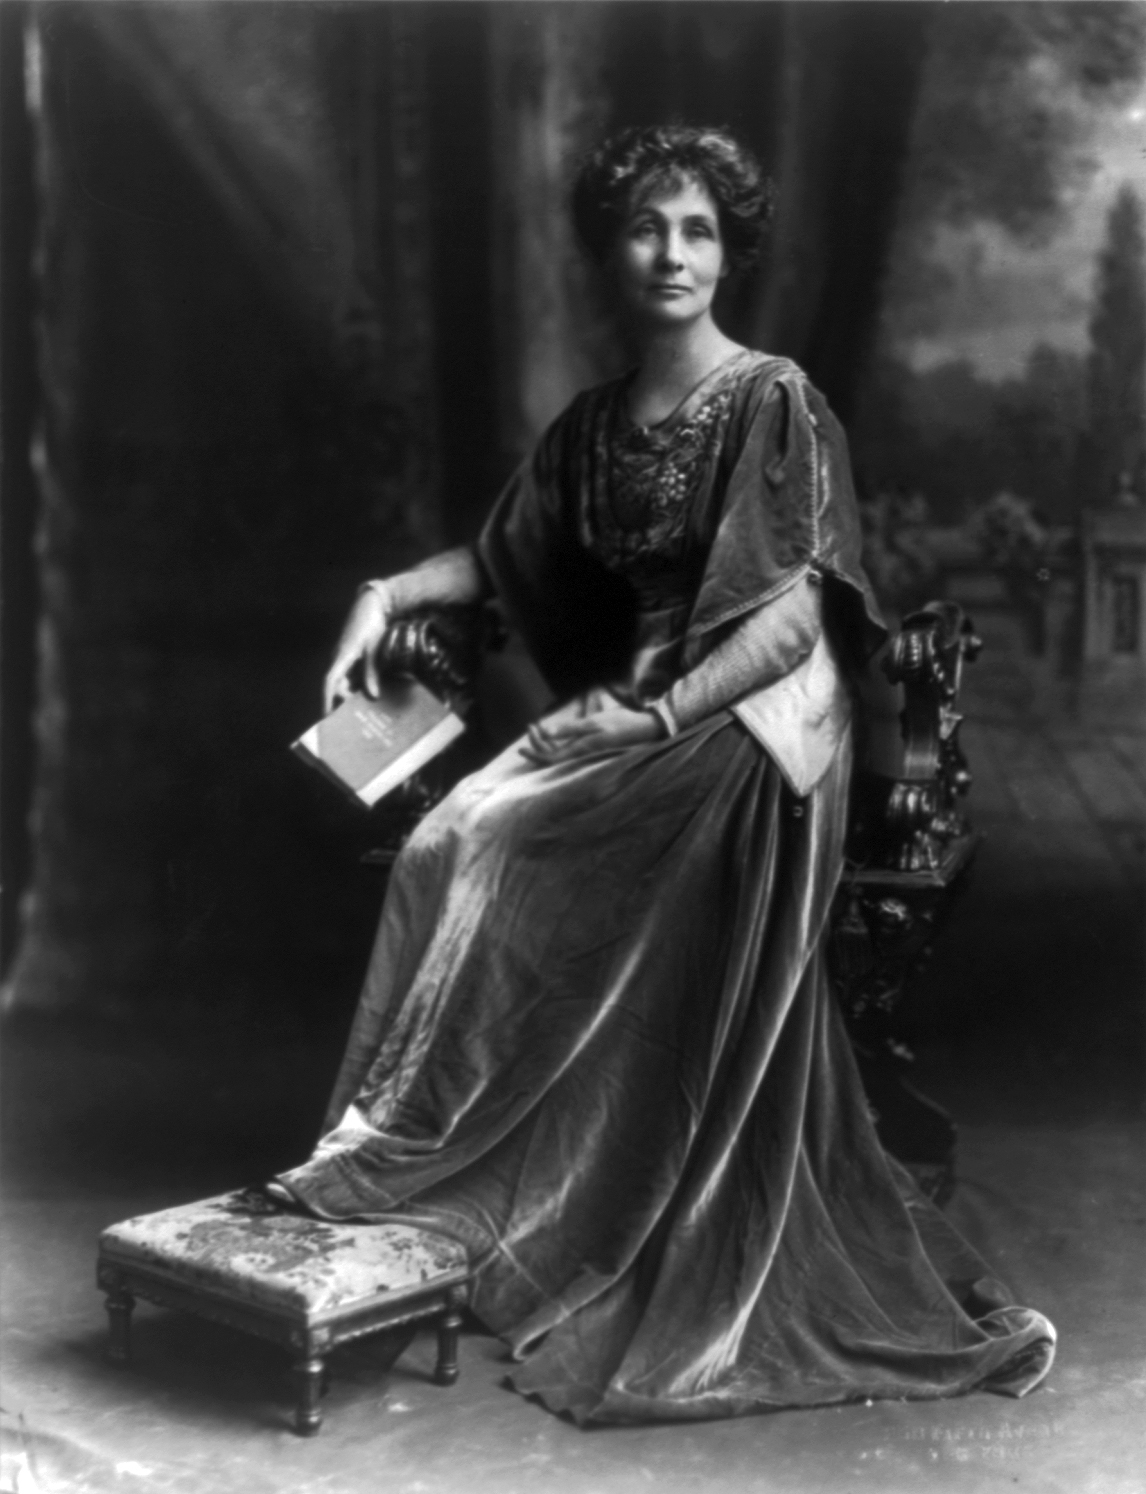 Emmeline Pankhurst posed portrait sitting in chair with book